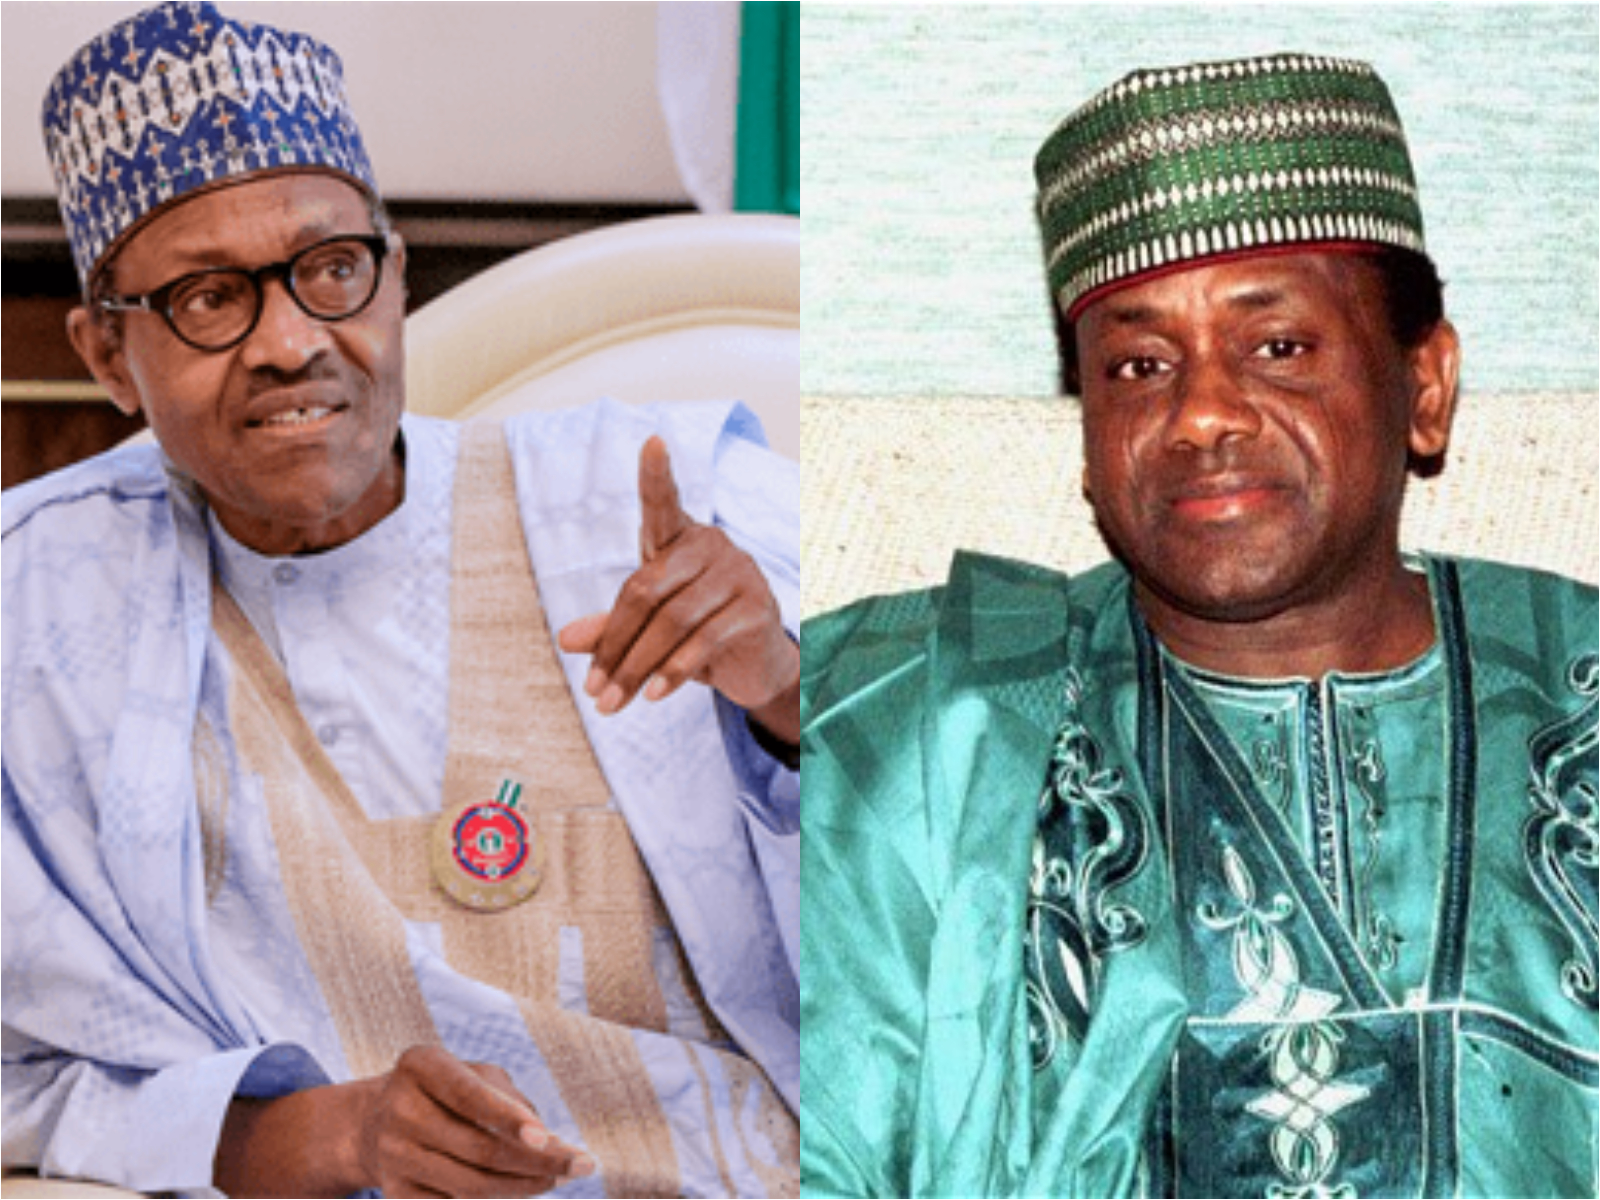 How Buhari spent Abacha's loot on lifting Nigerians out of poverty – FG